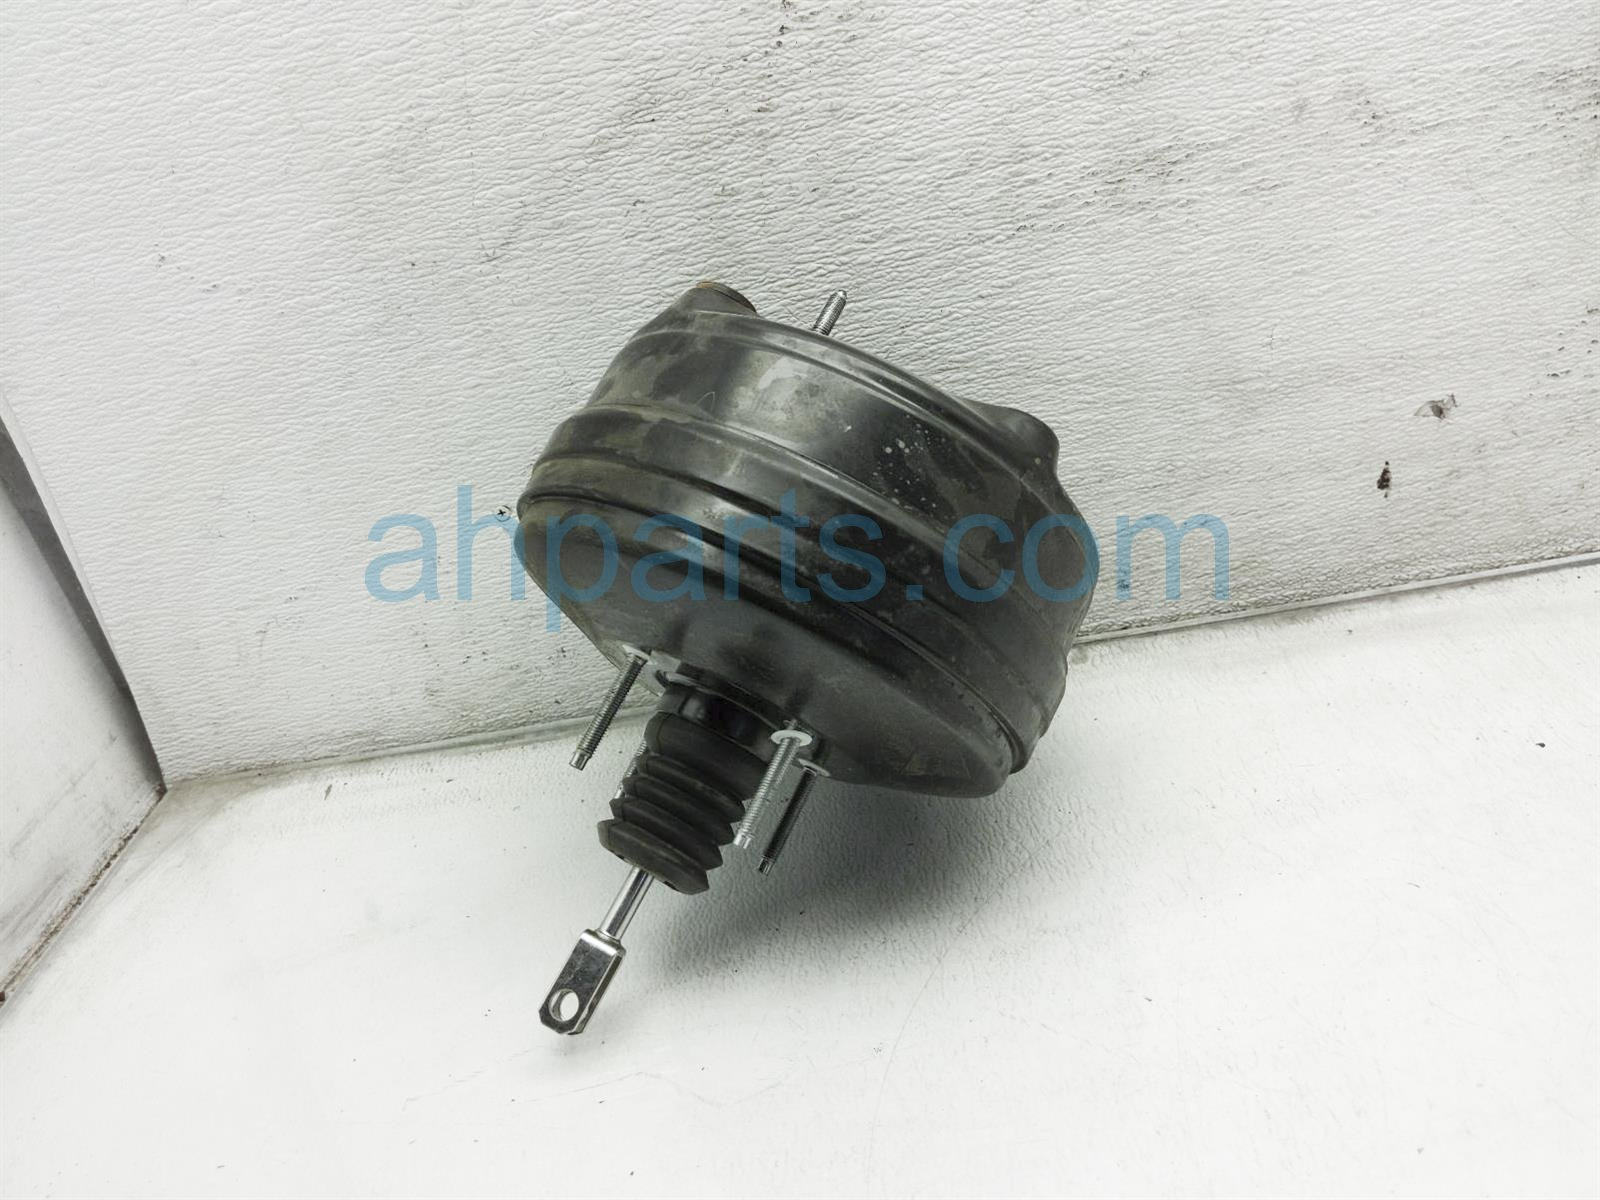 2017 Ford Mustang Power Brake Booster FR3Z 2005 L Replacement